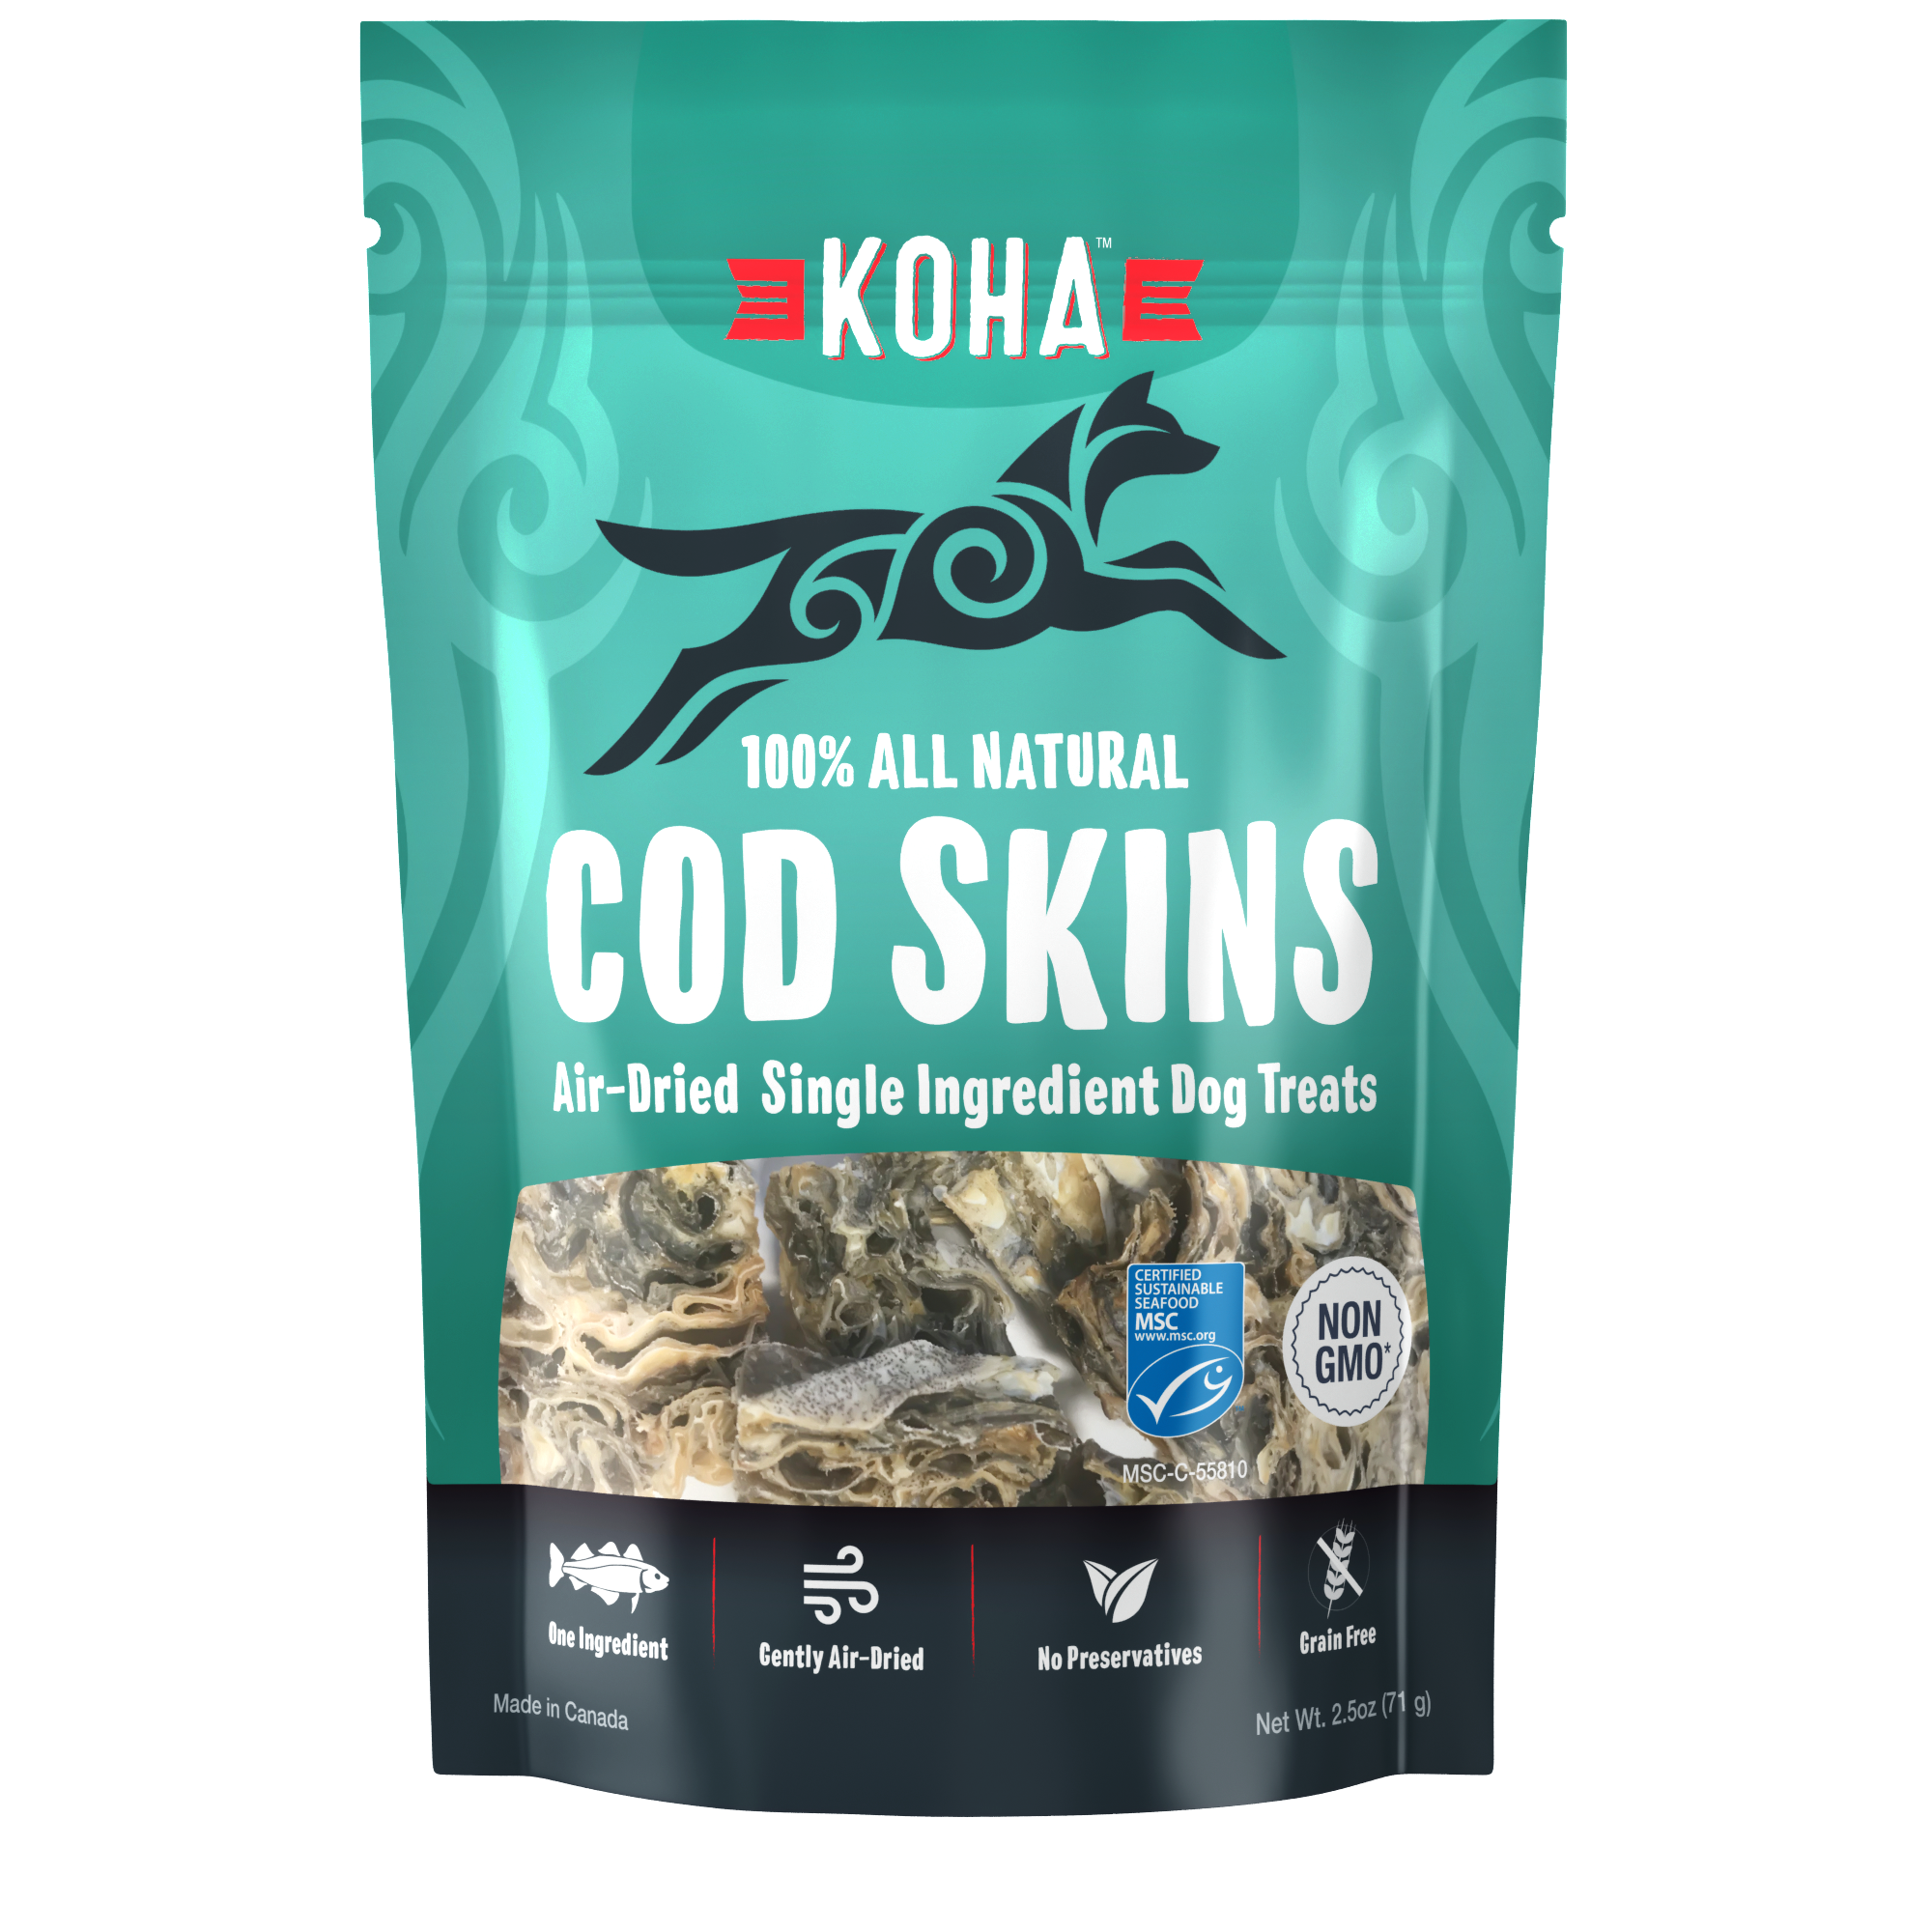 Koha Koha Air Dried Single Ingredient Cod Skins 2.5oz